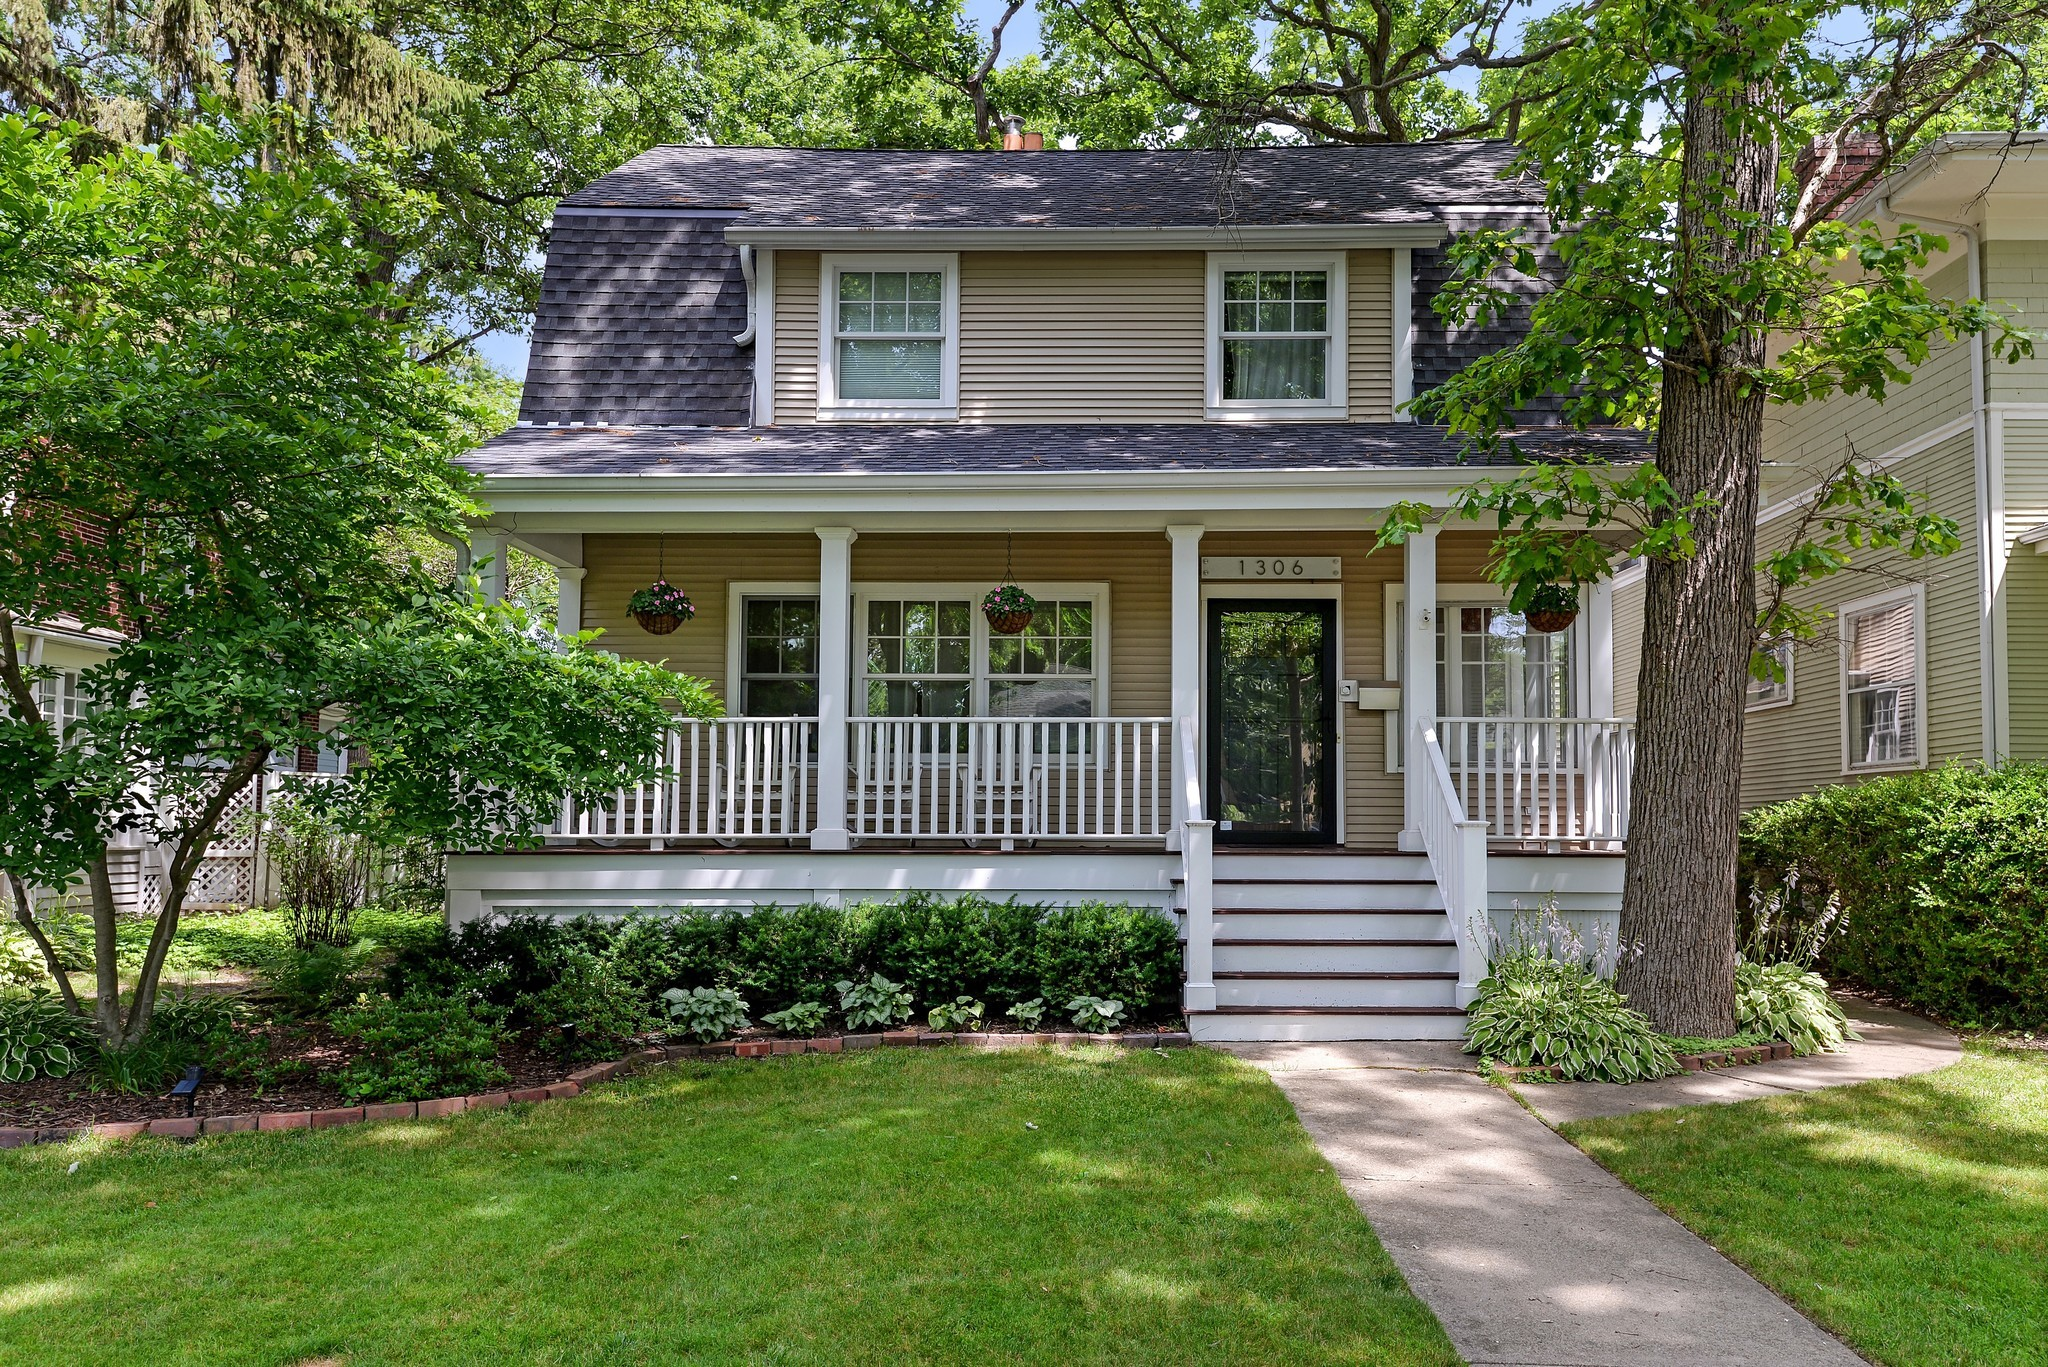 Colonial home in Wilmette: $1.1M